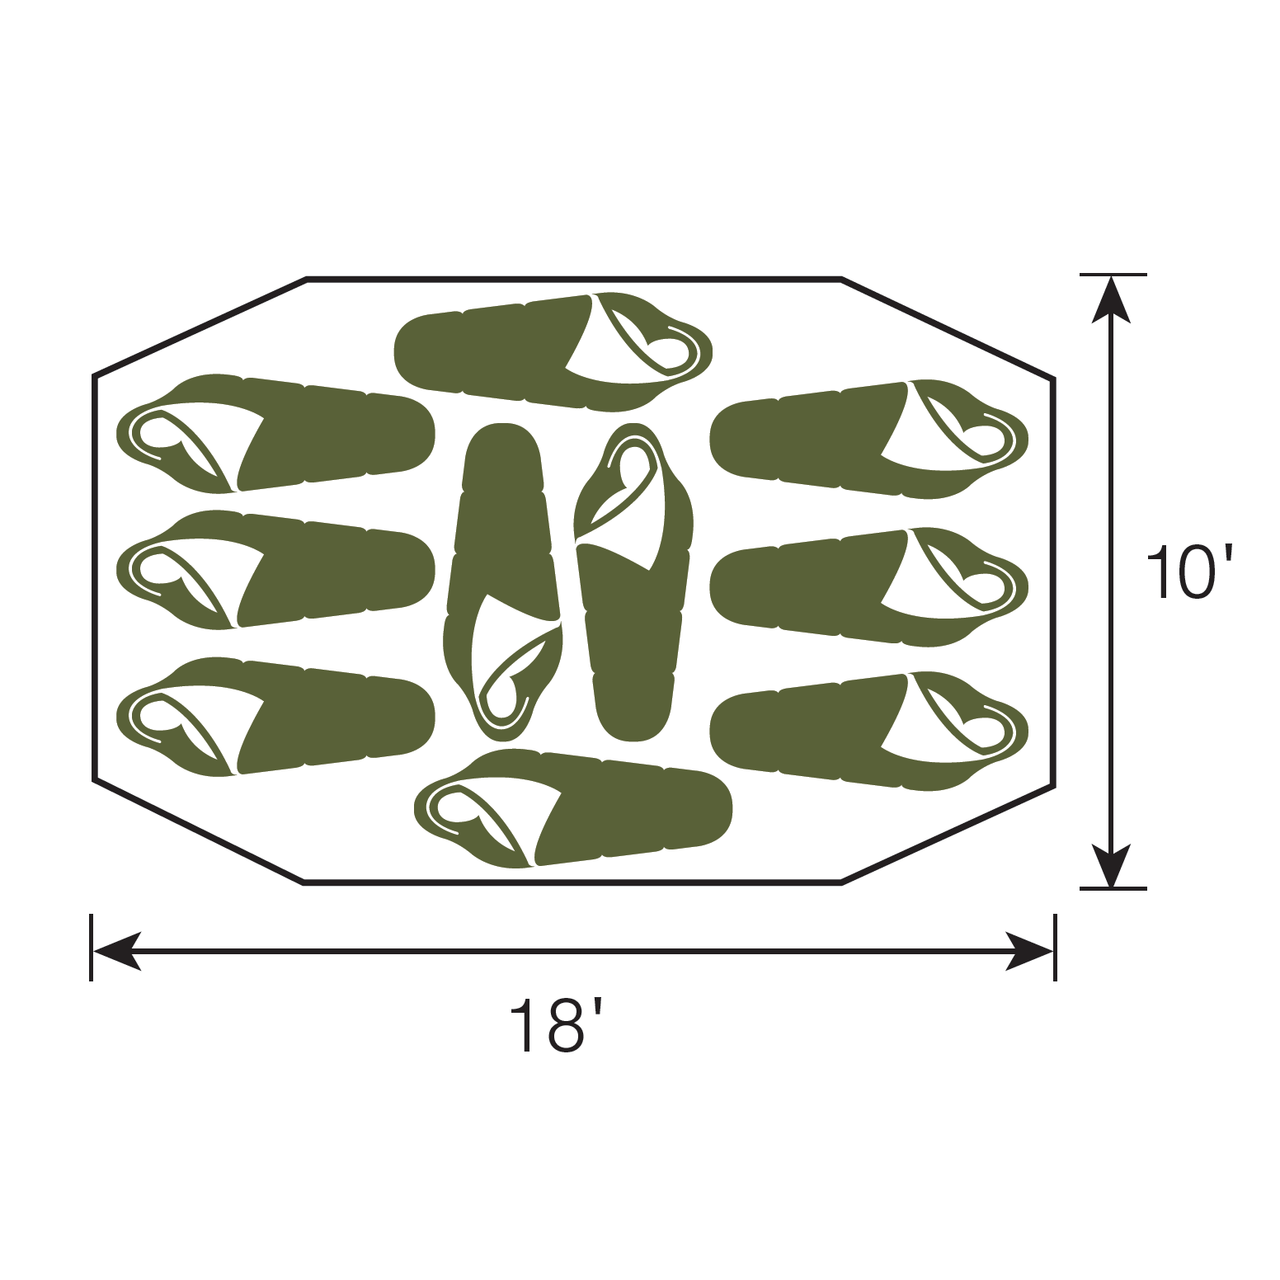 Diagram of the floor sleeping plan with sleeping bags shown where people will sleep in the Wenzel Great Basin 10 tent